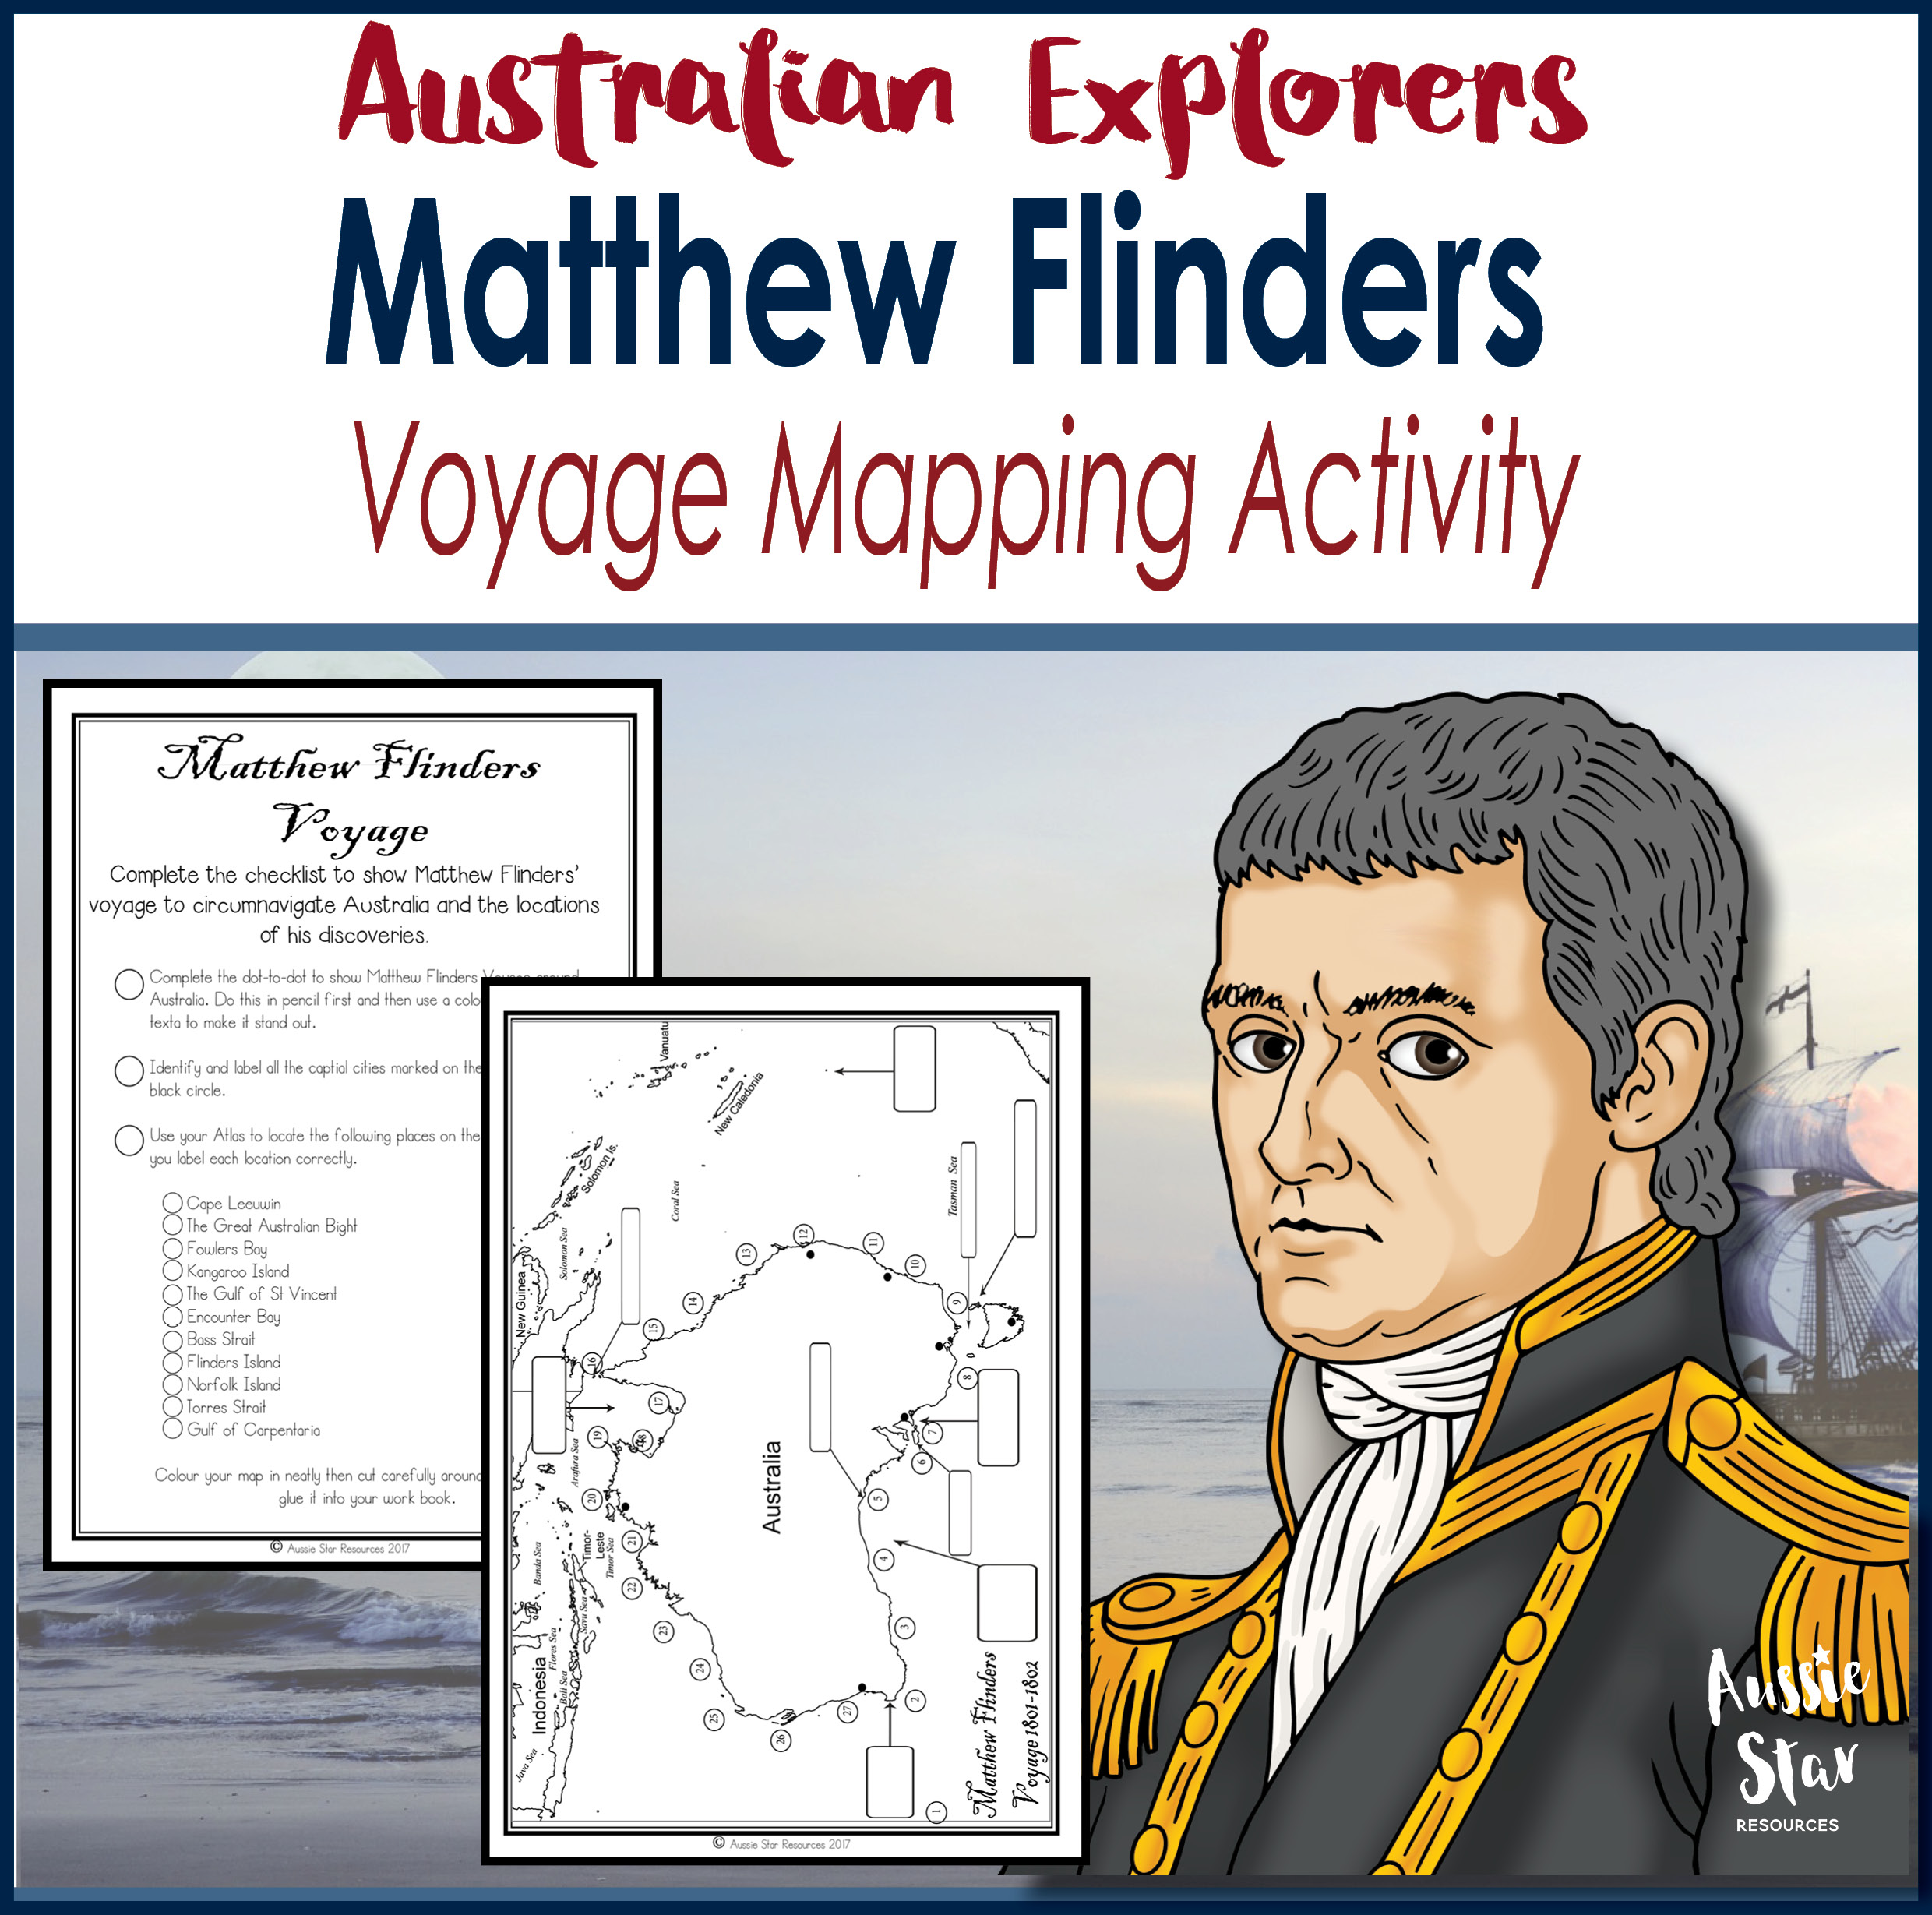 Matthew Flinders Voyage Mapping Activity